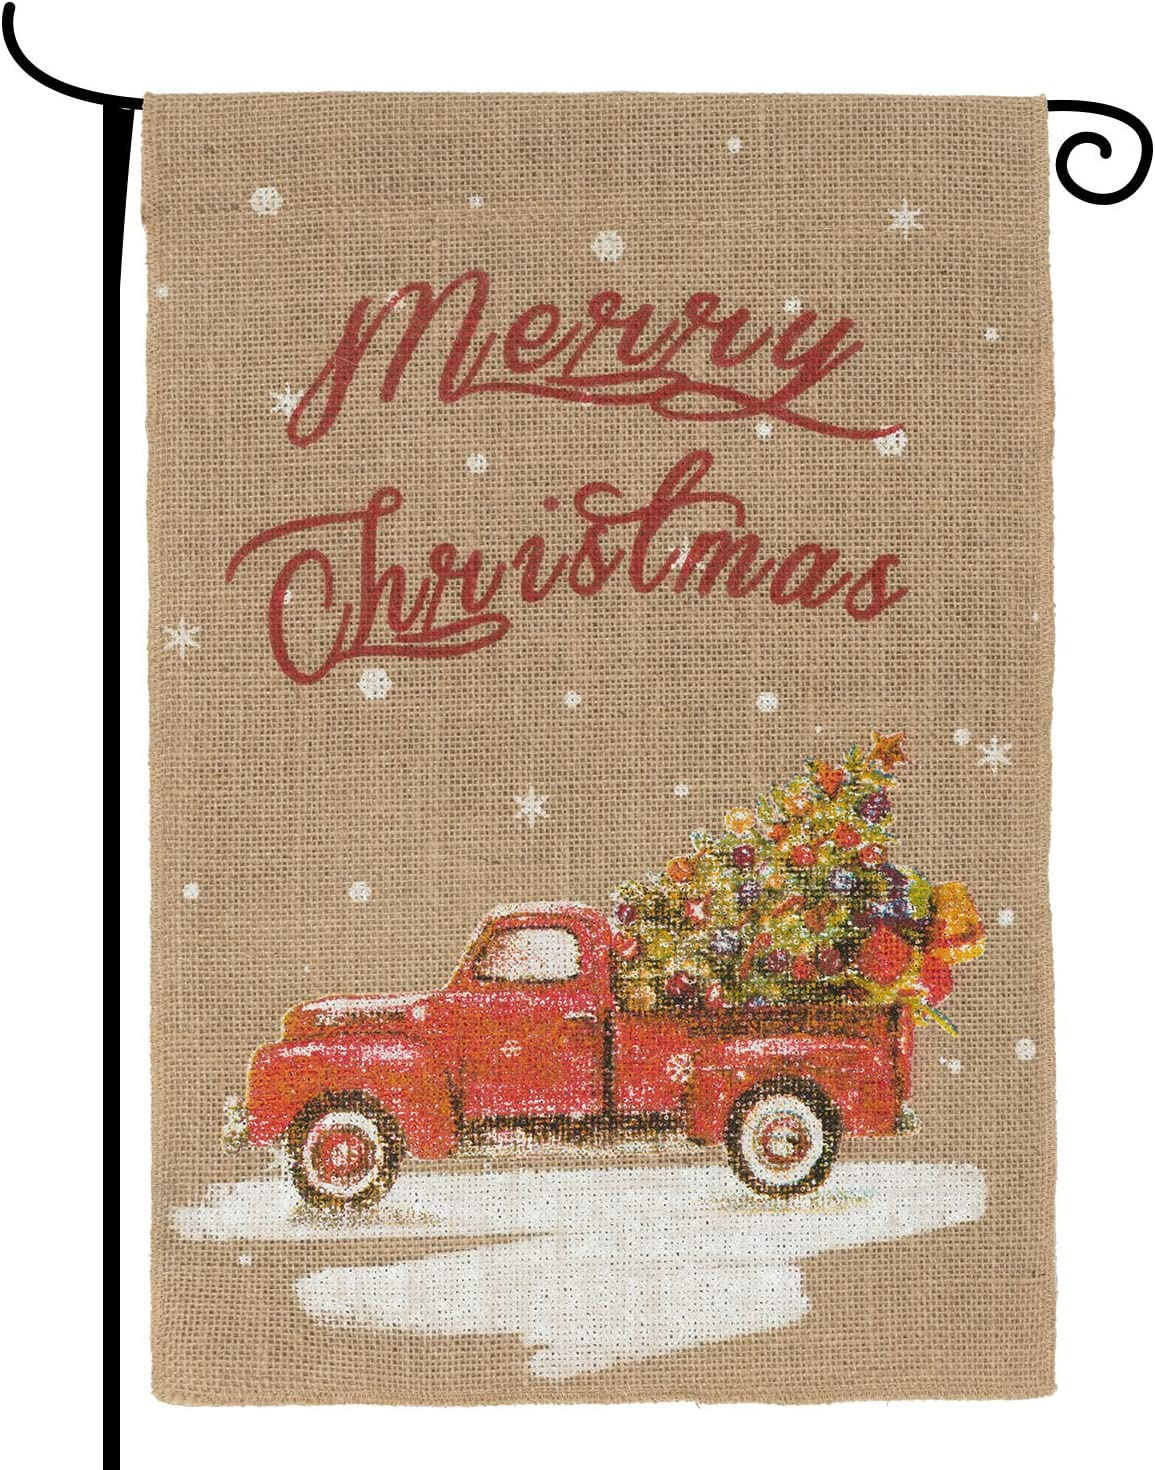 N&T NIETING Burlap Merry Christmas Garden Flag 18X12 Inches Vintage Red Christmas Truck Yard Flag Rustic Winter Garden Decor Seasonal Outdoor Flag